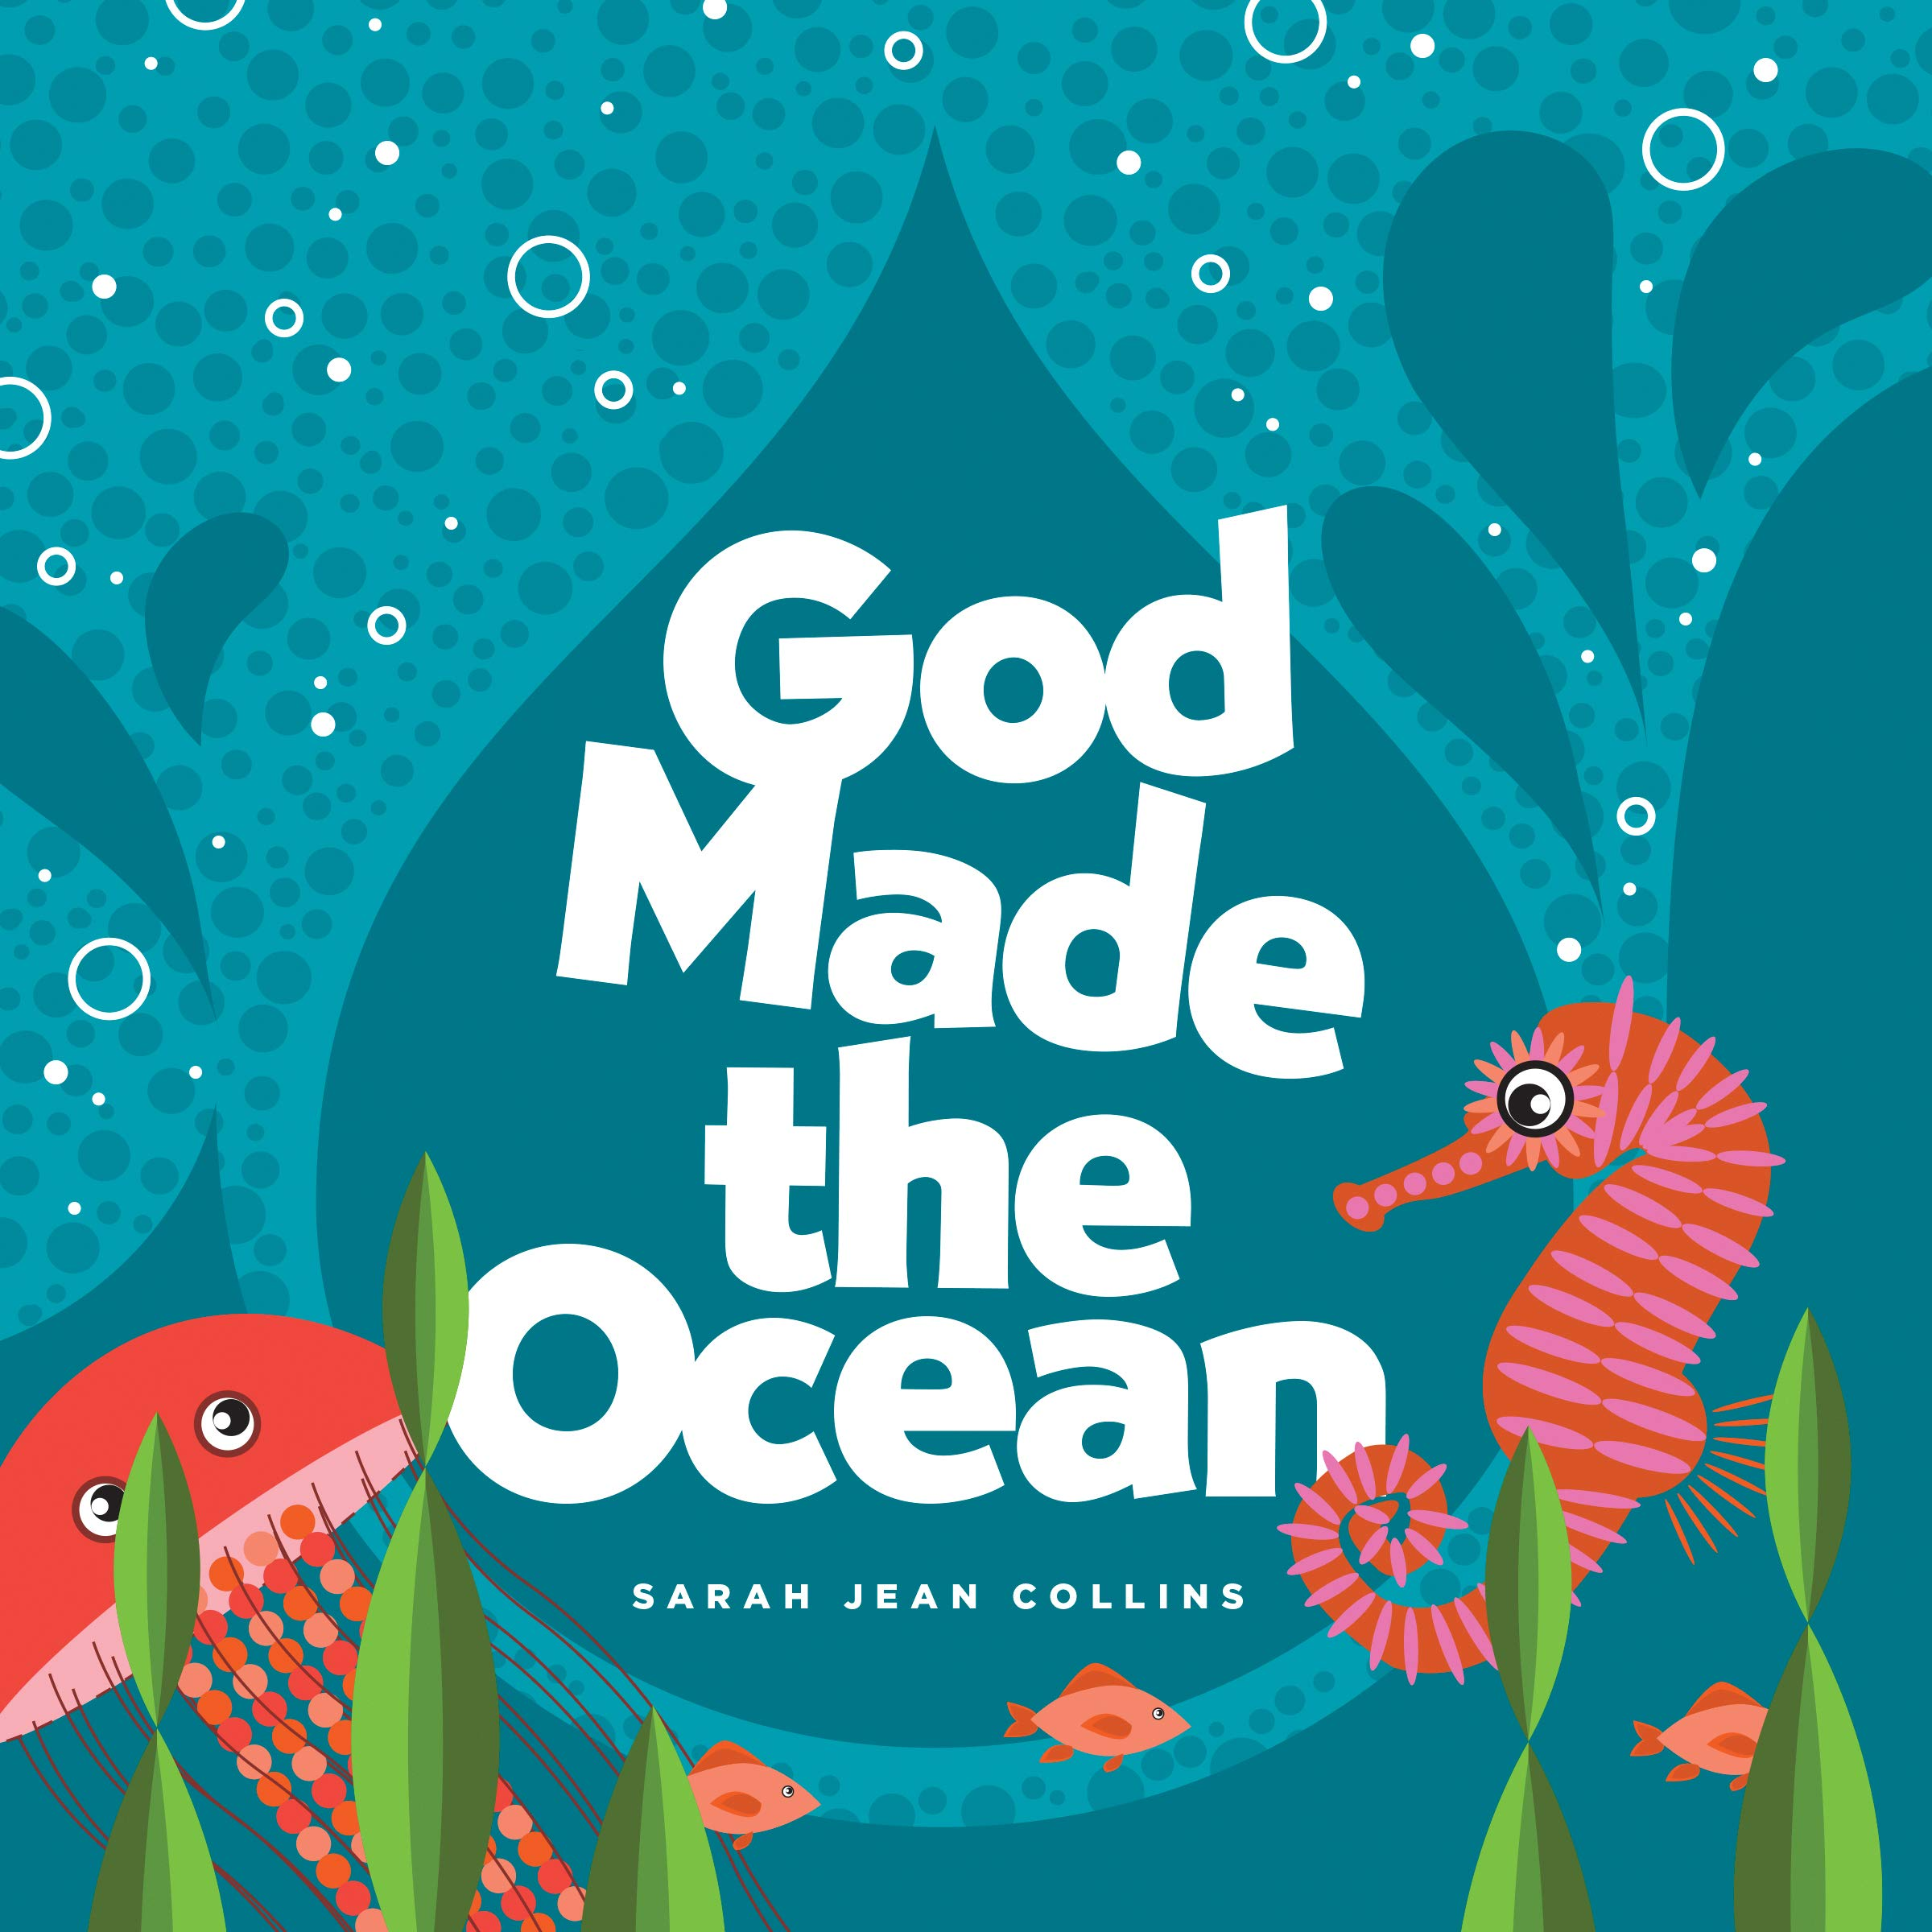 ROCKONLINE | New Creation Church | NCC | Joseph Prince | ROCK Bookshop | ROCK Bookstore | Star Vista | Children | Kids | Toddler | Preschooler | Bible Story | Christian Living | Boardbook | Bible | God Made the Ocean, Boardbook | Tyndale Kids | God Made Series | Free delivery for SG orders above $50.